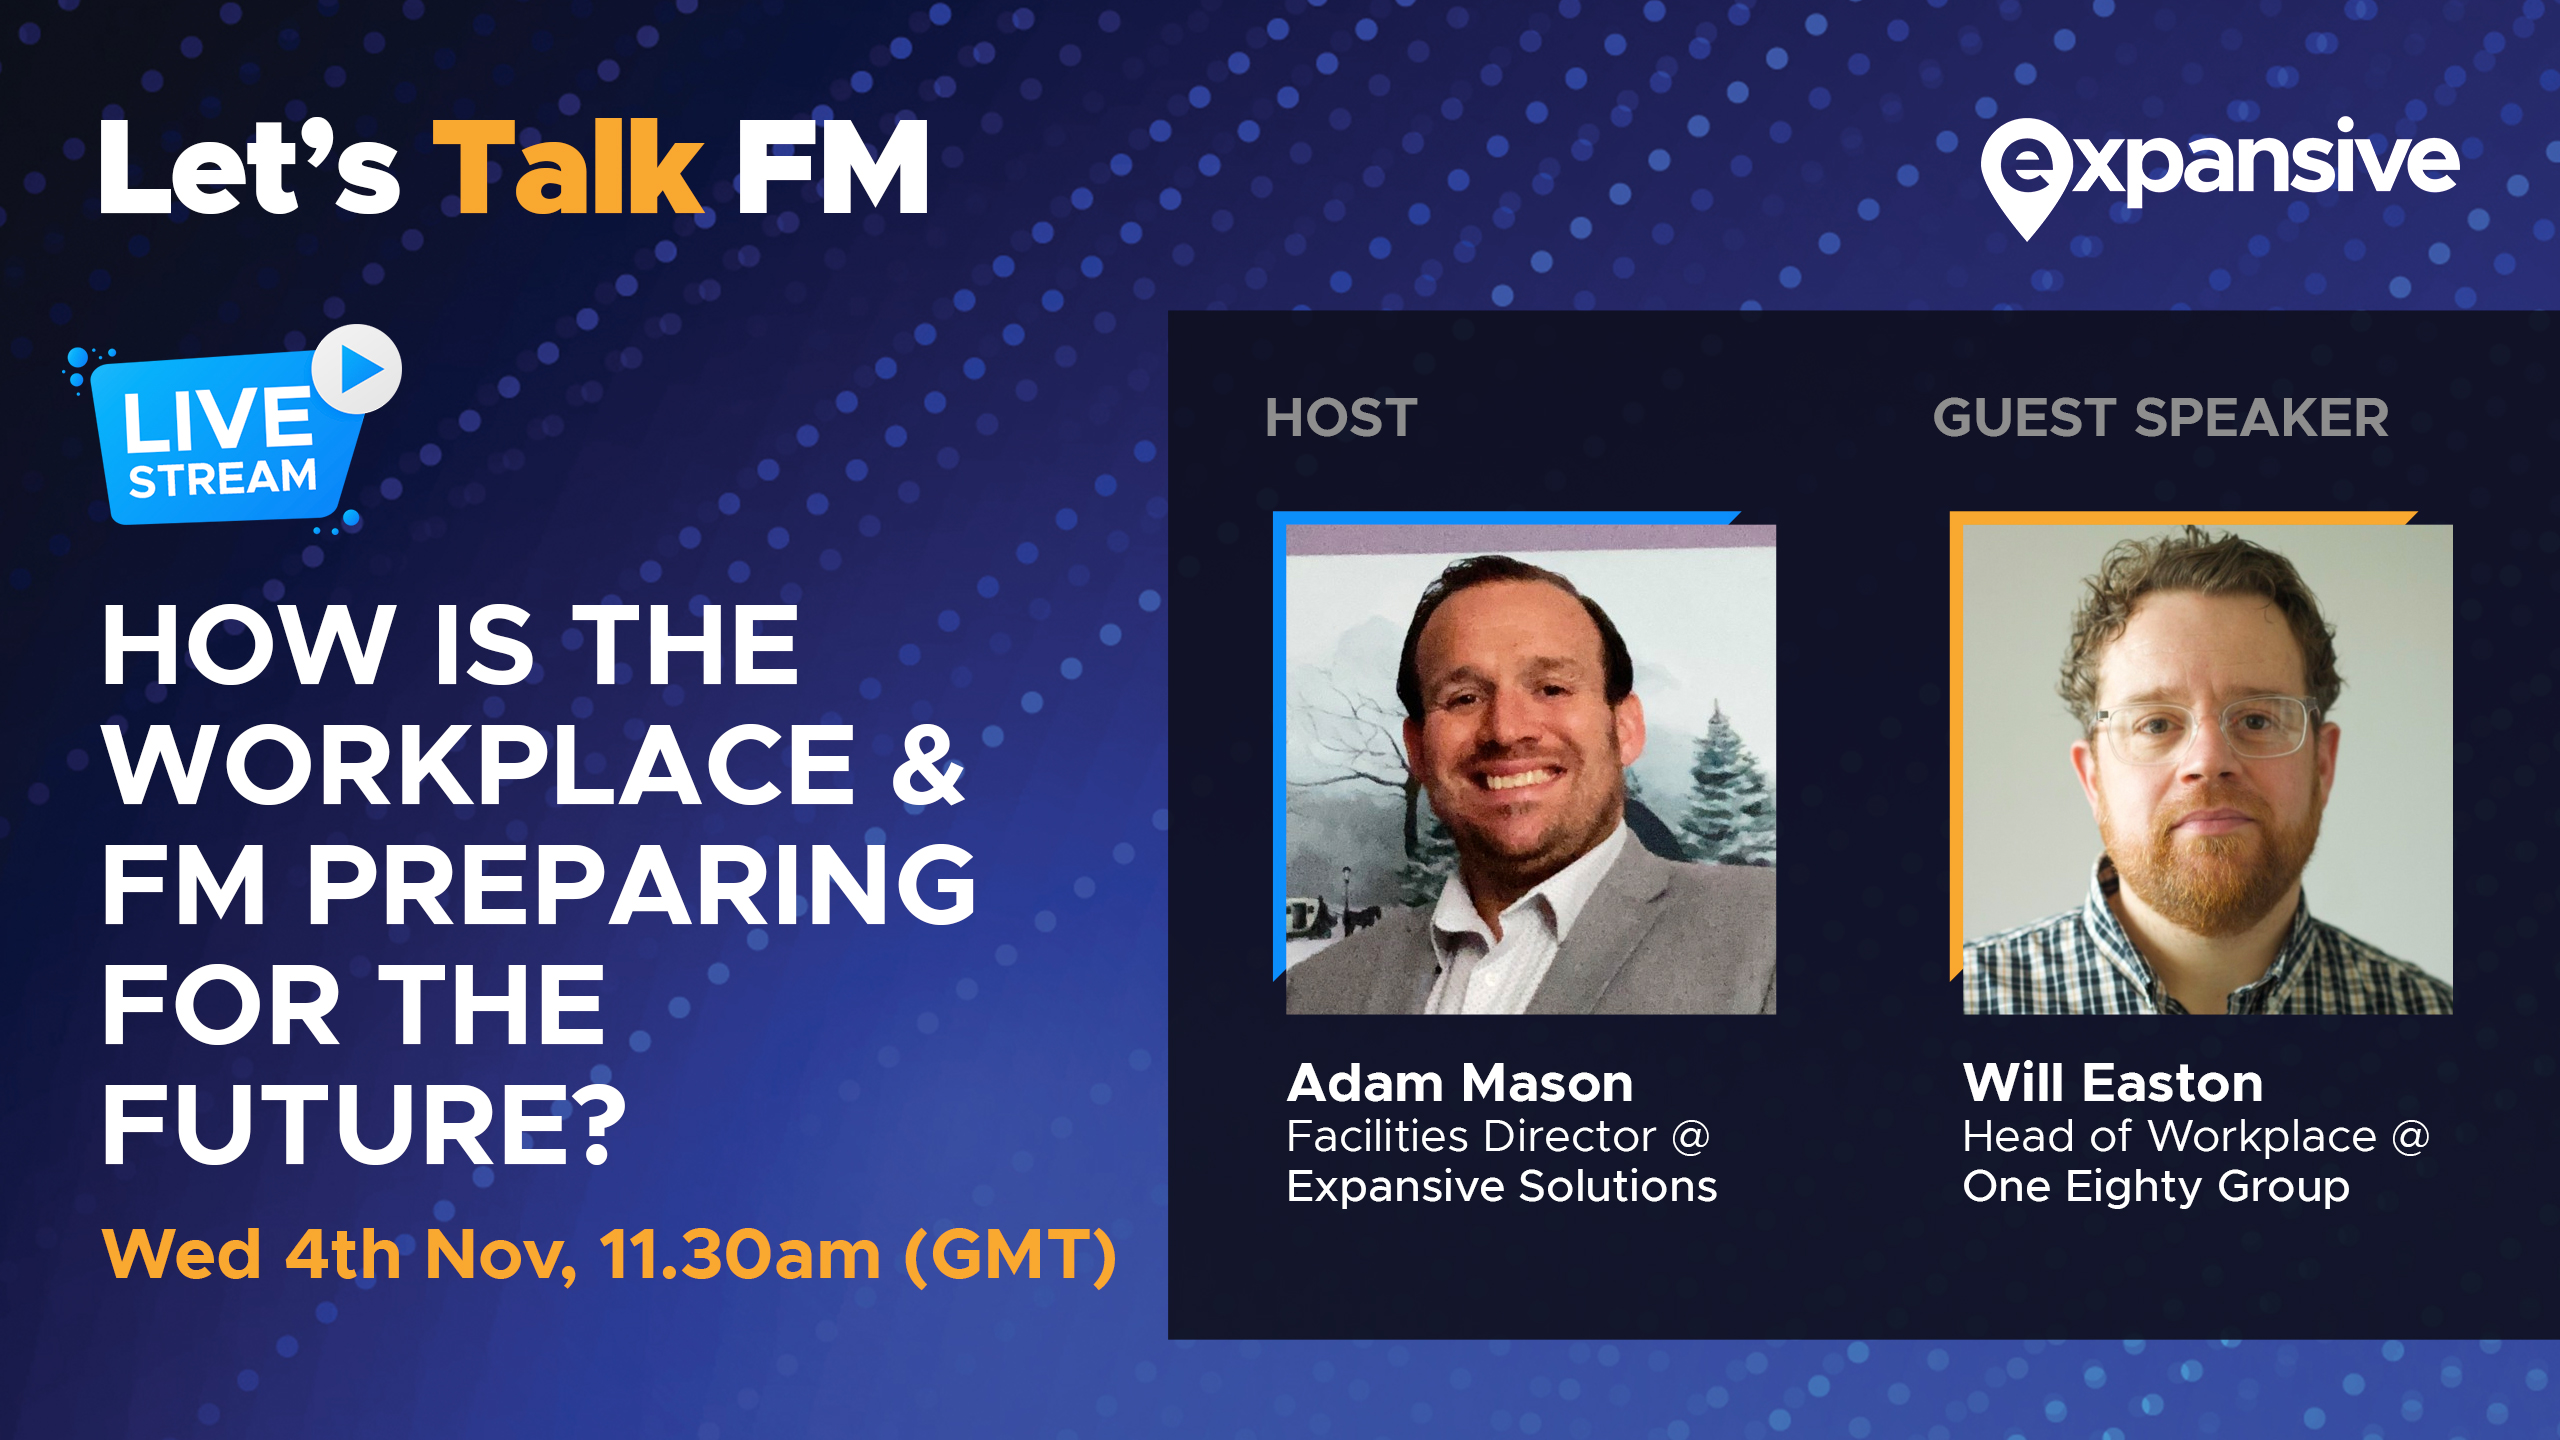 How is the workplace & FM preparing for the future?